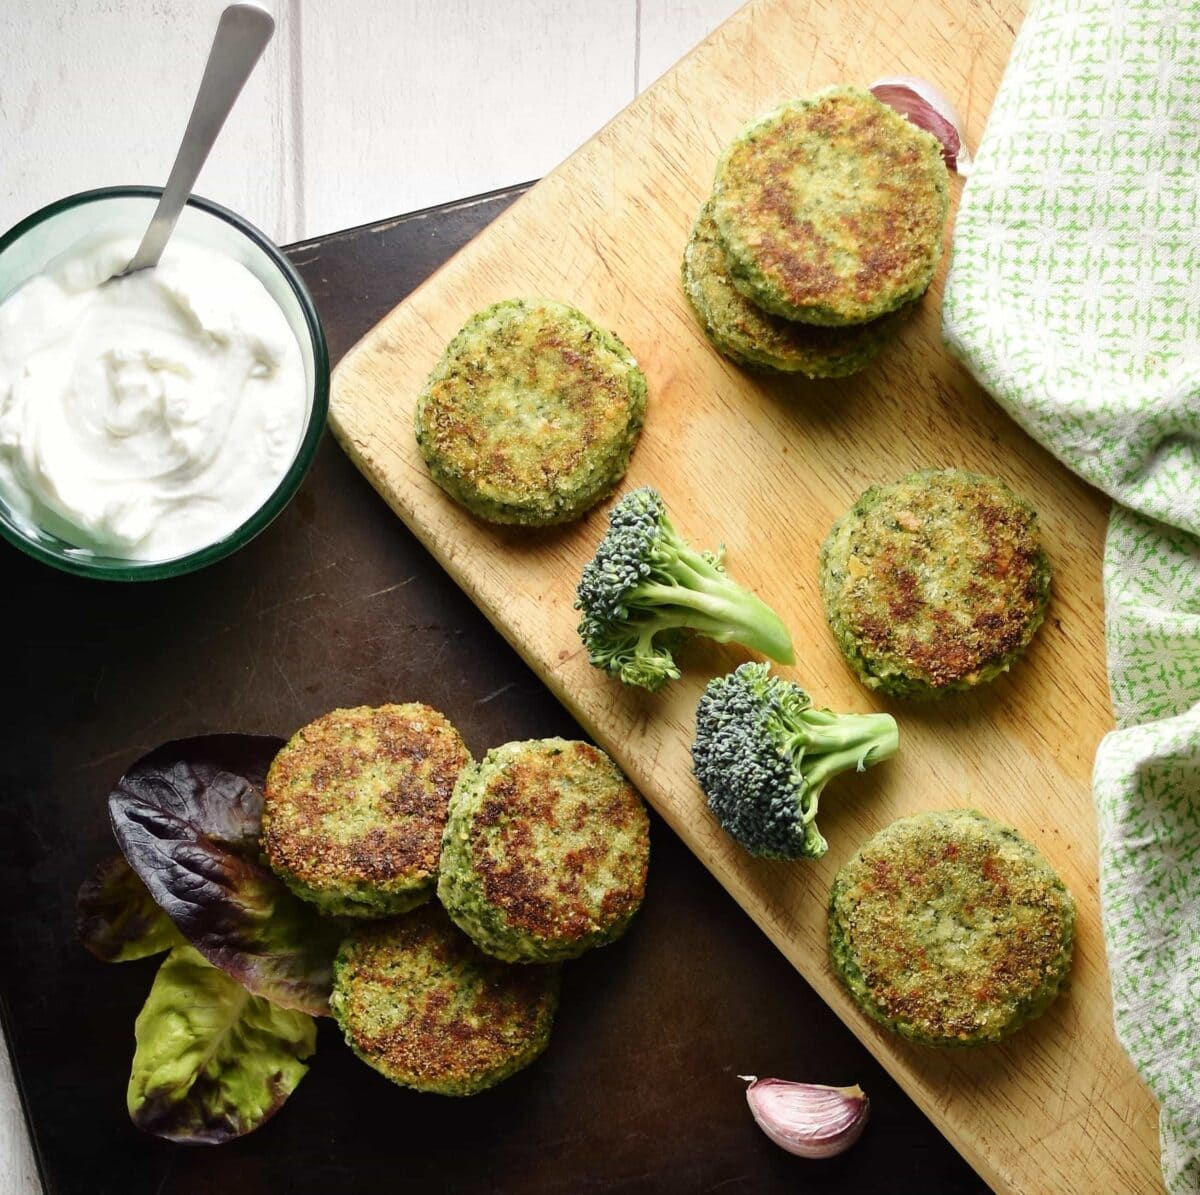 Top down view of broccoli cakes on dark tray and wooden board with broccoli florets, garlic clove, yogurt in small dish with spoon to left and green cloth to right.